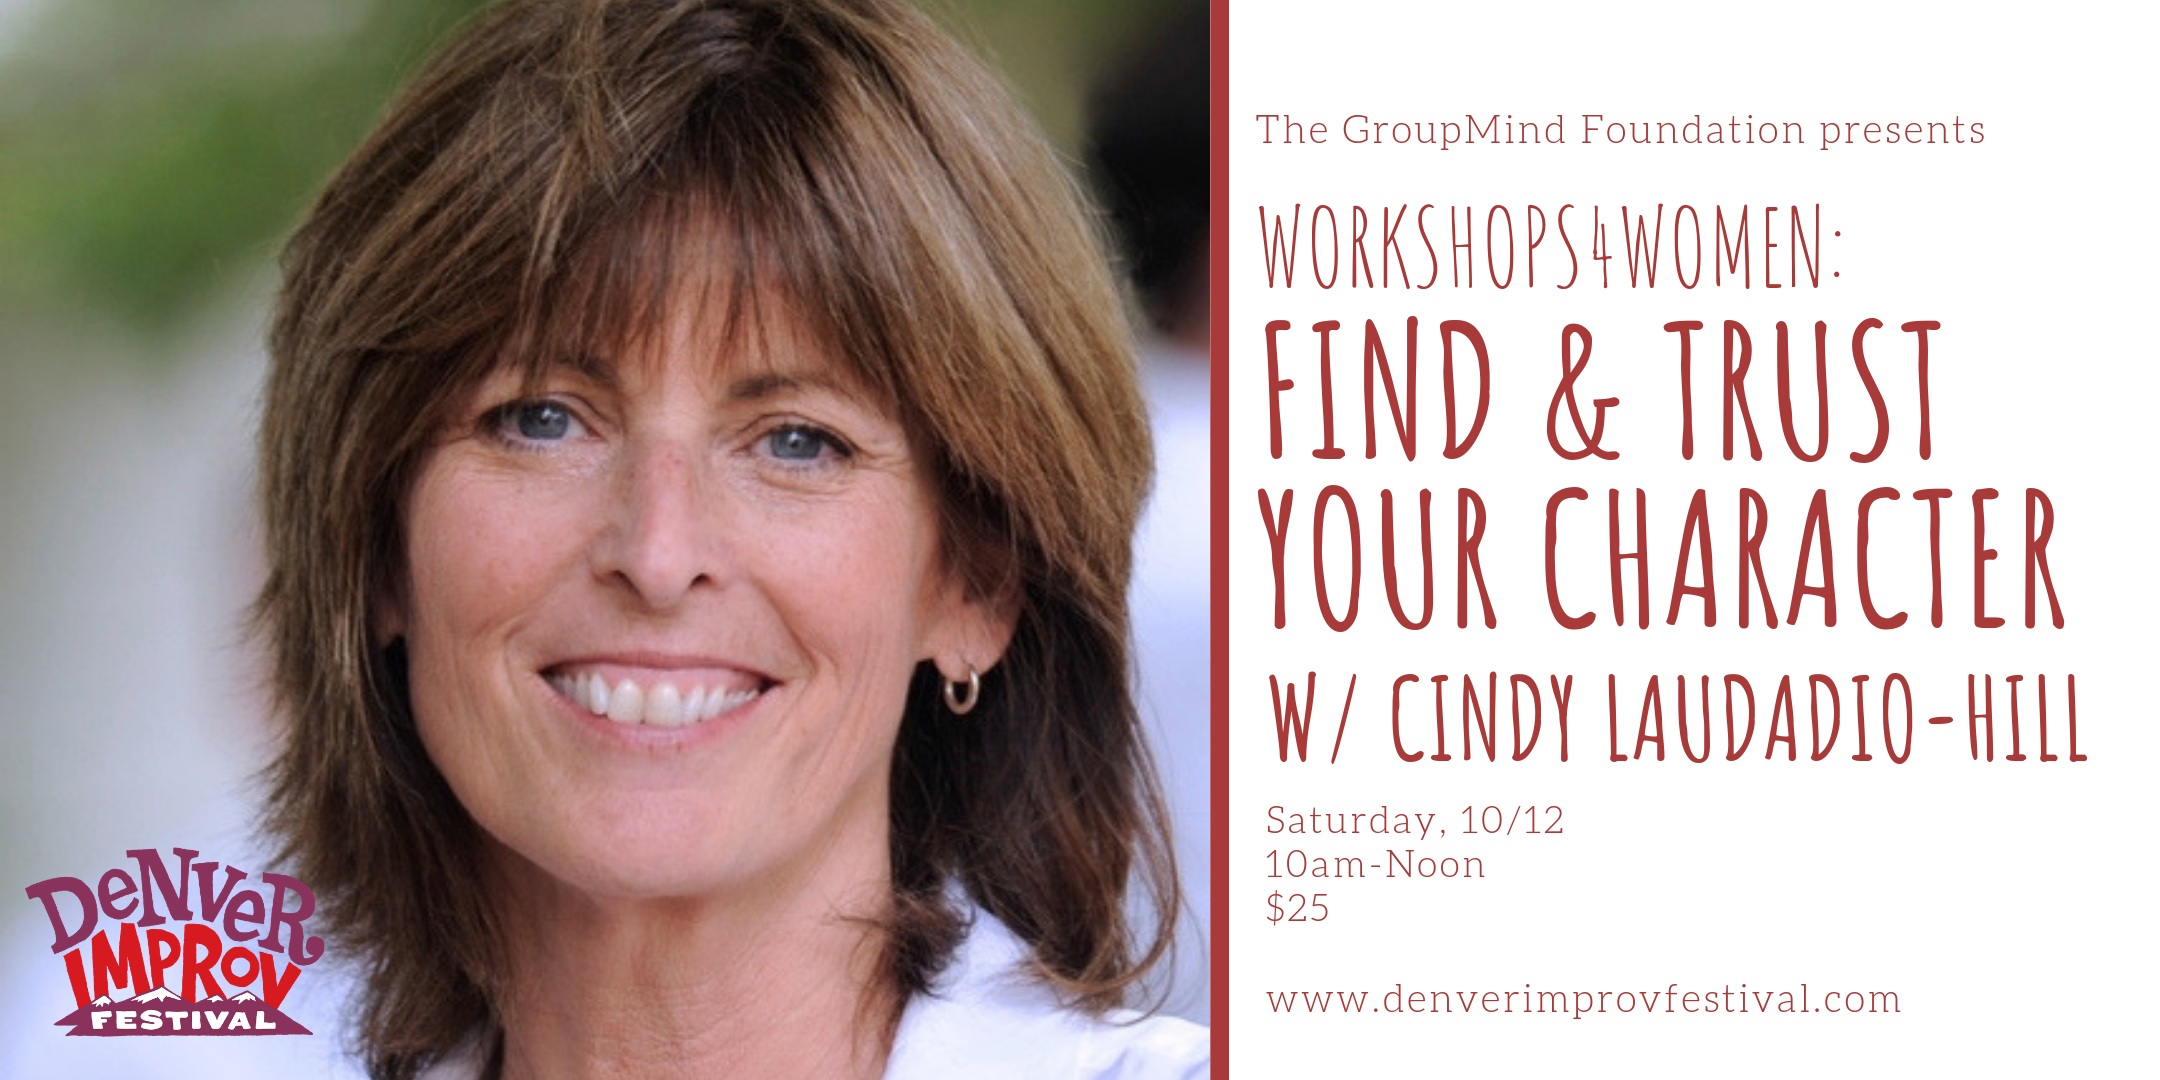 Saturday, October 12th - Register Here